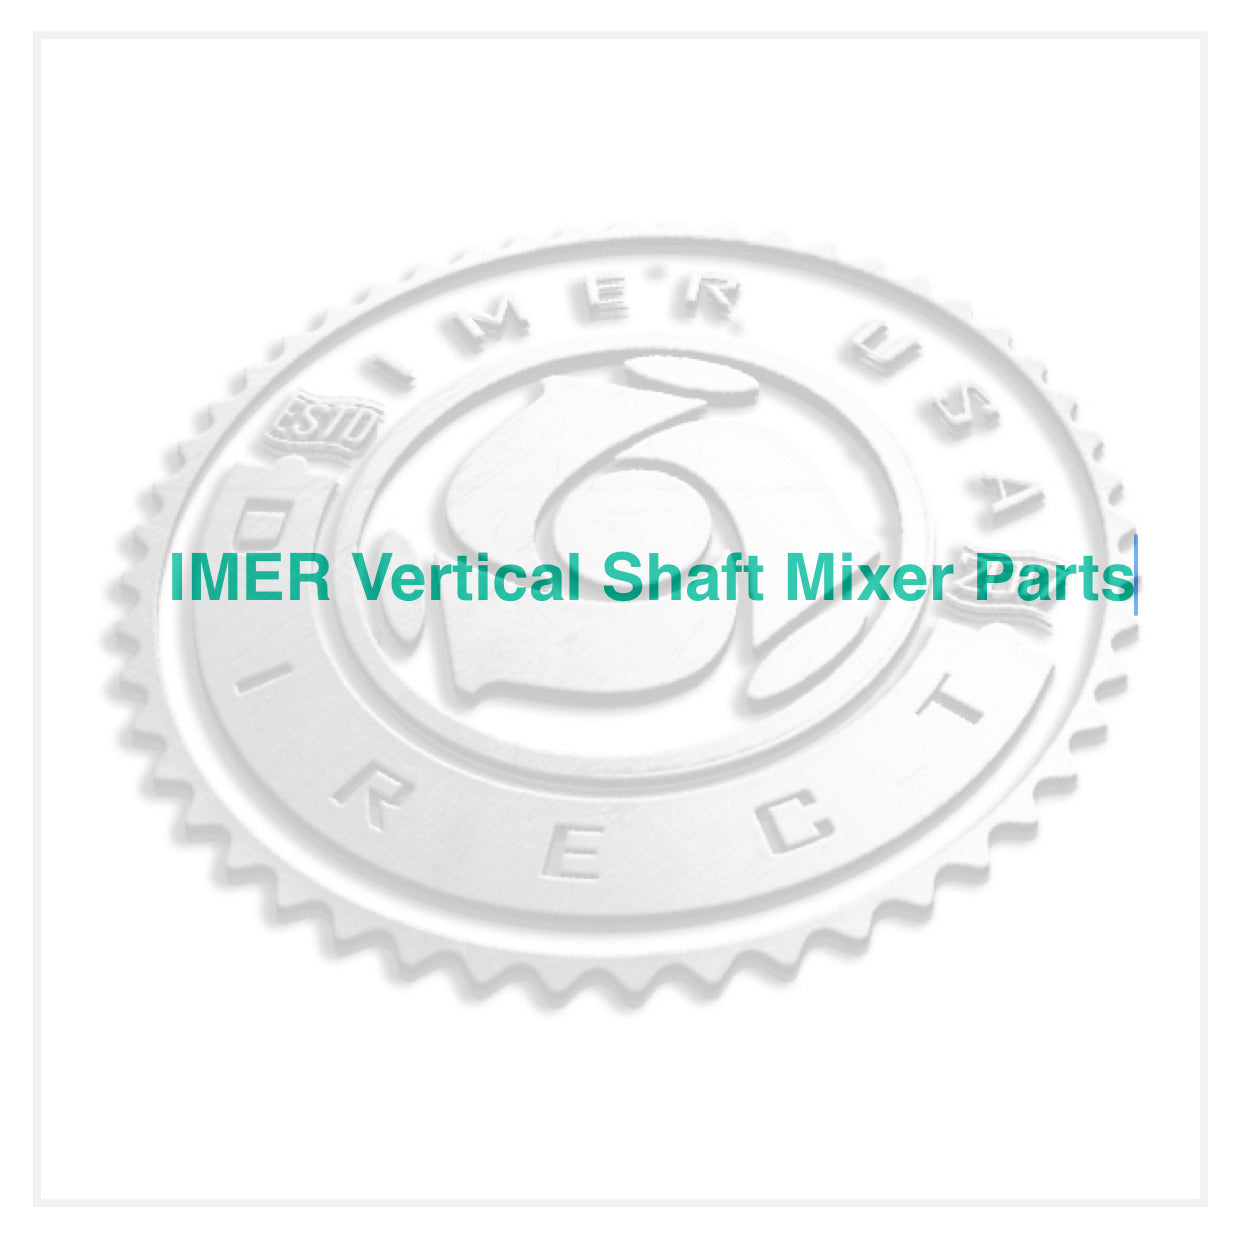 IMER Part Number 3211674  - Face Plate - Horizontal Outer Paddle - IMER MIX 750/360 Vertical Shaft Mixers